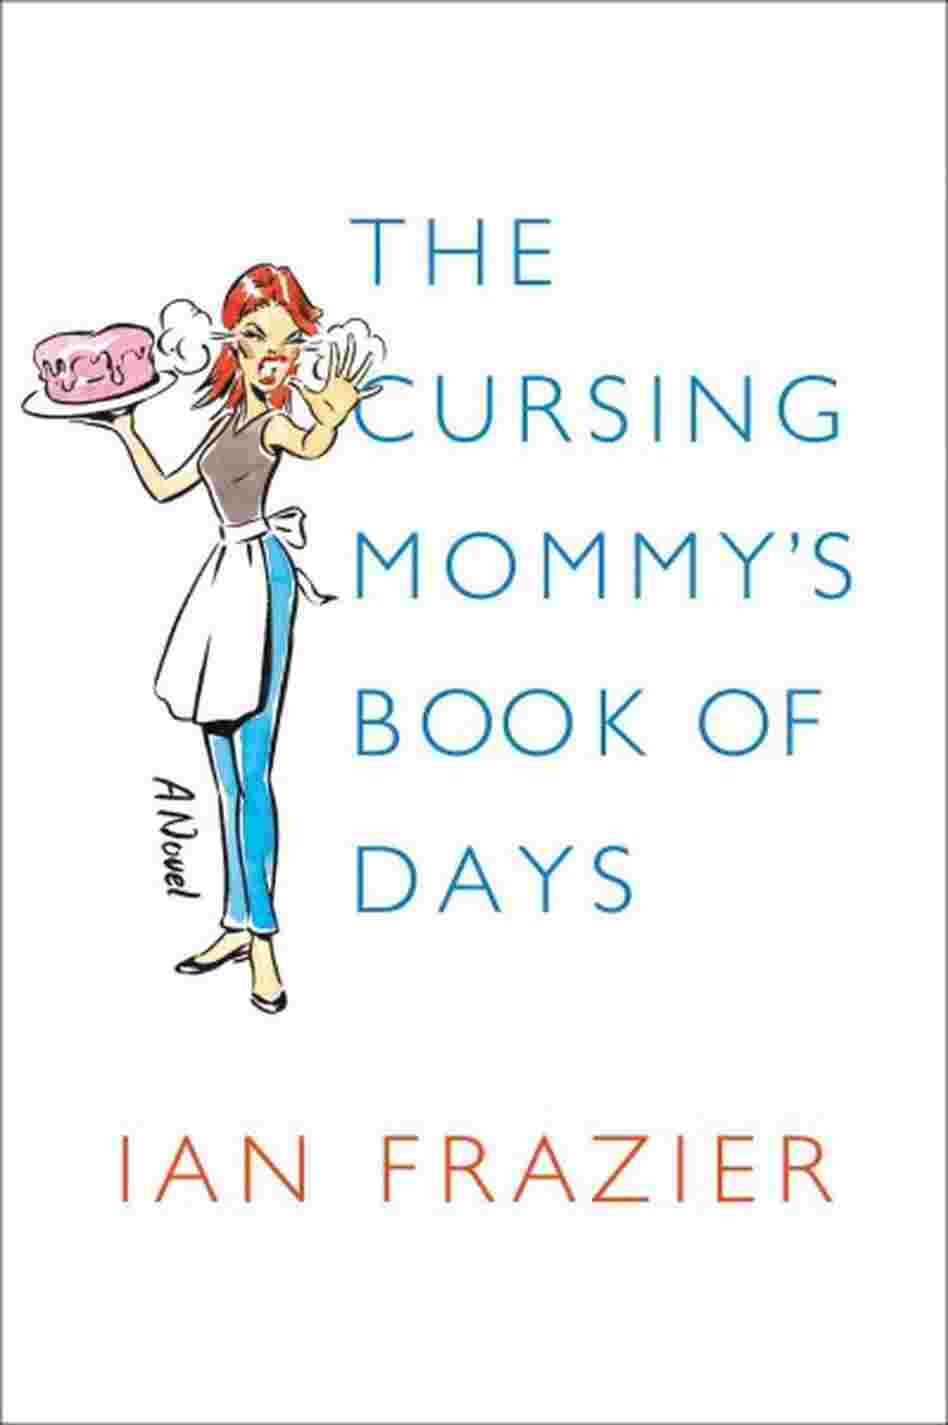 The Cursing Mommy's Book of Days: A Novel Ian Frazier